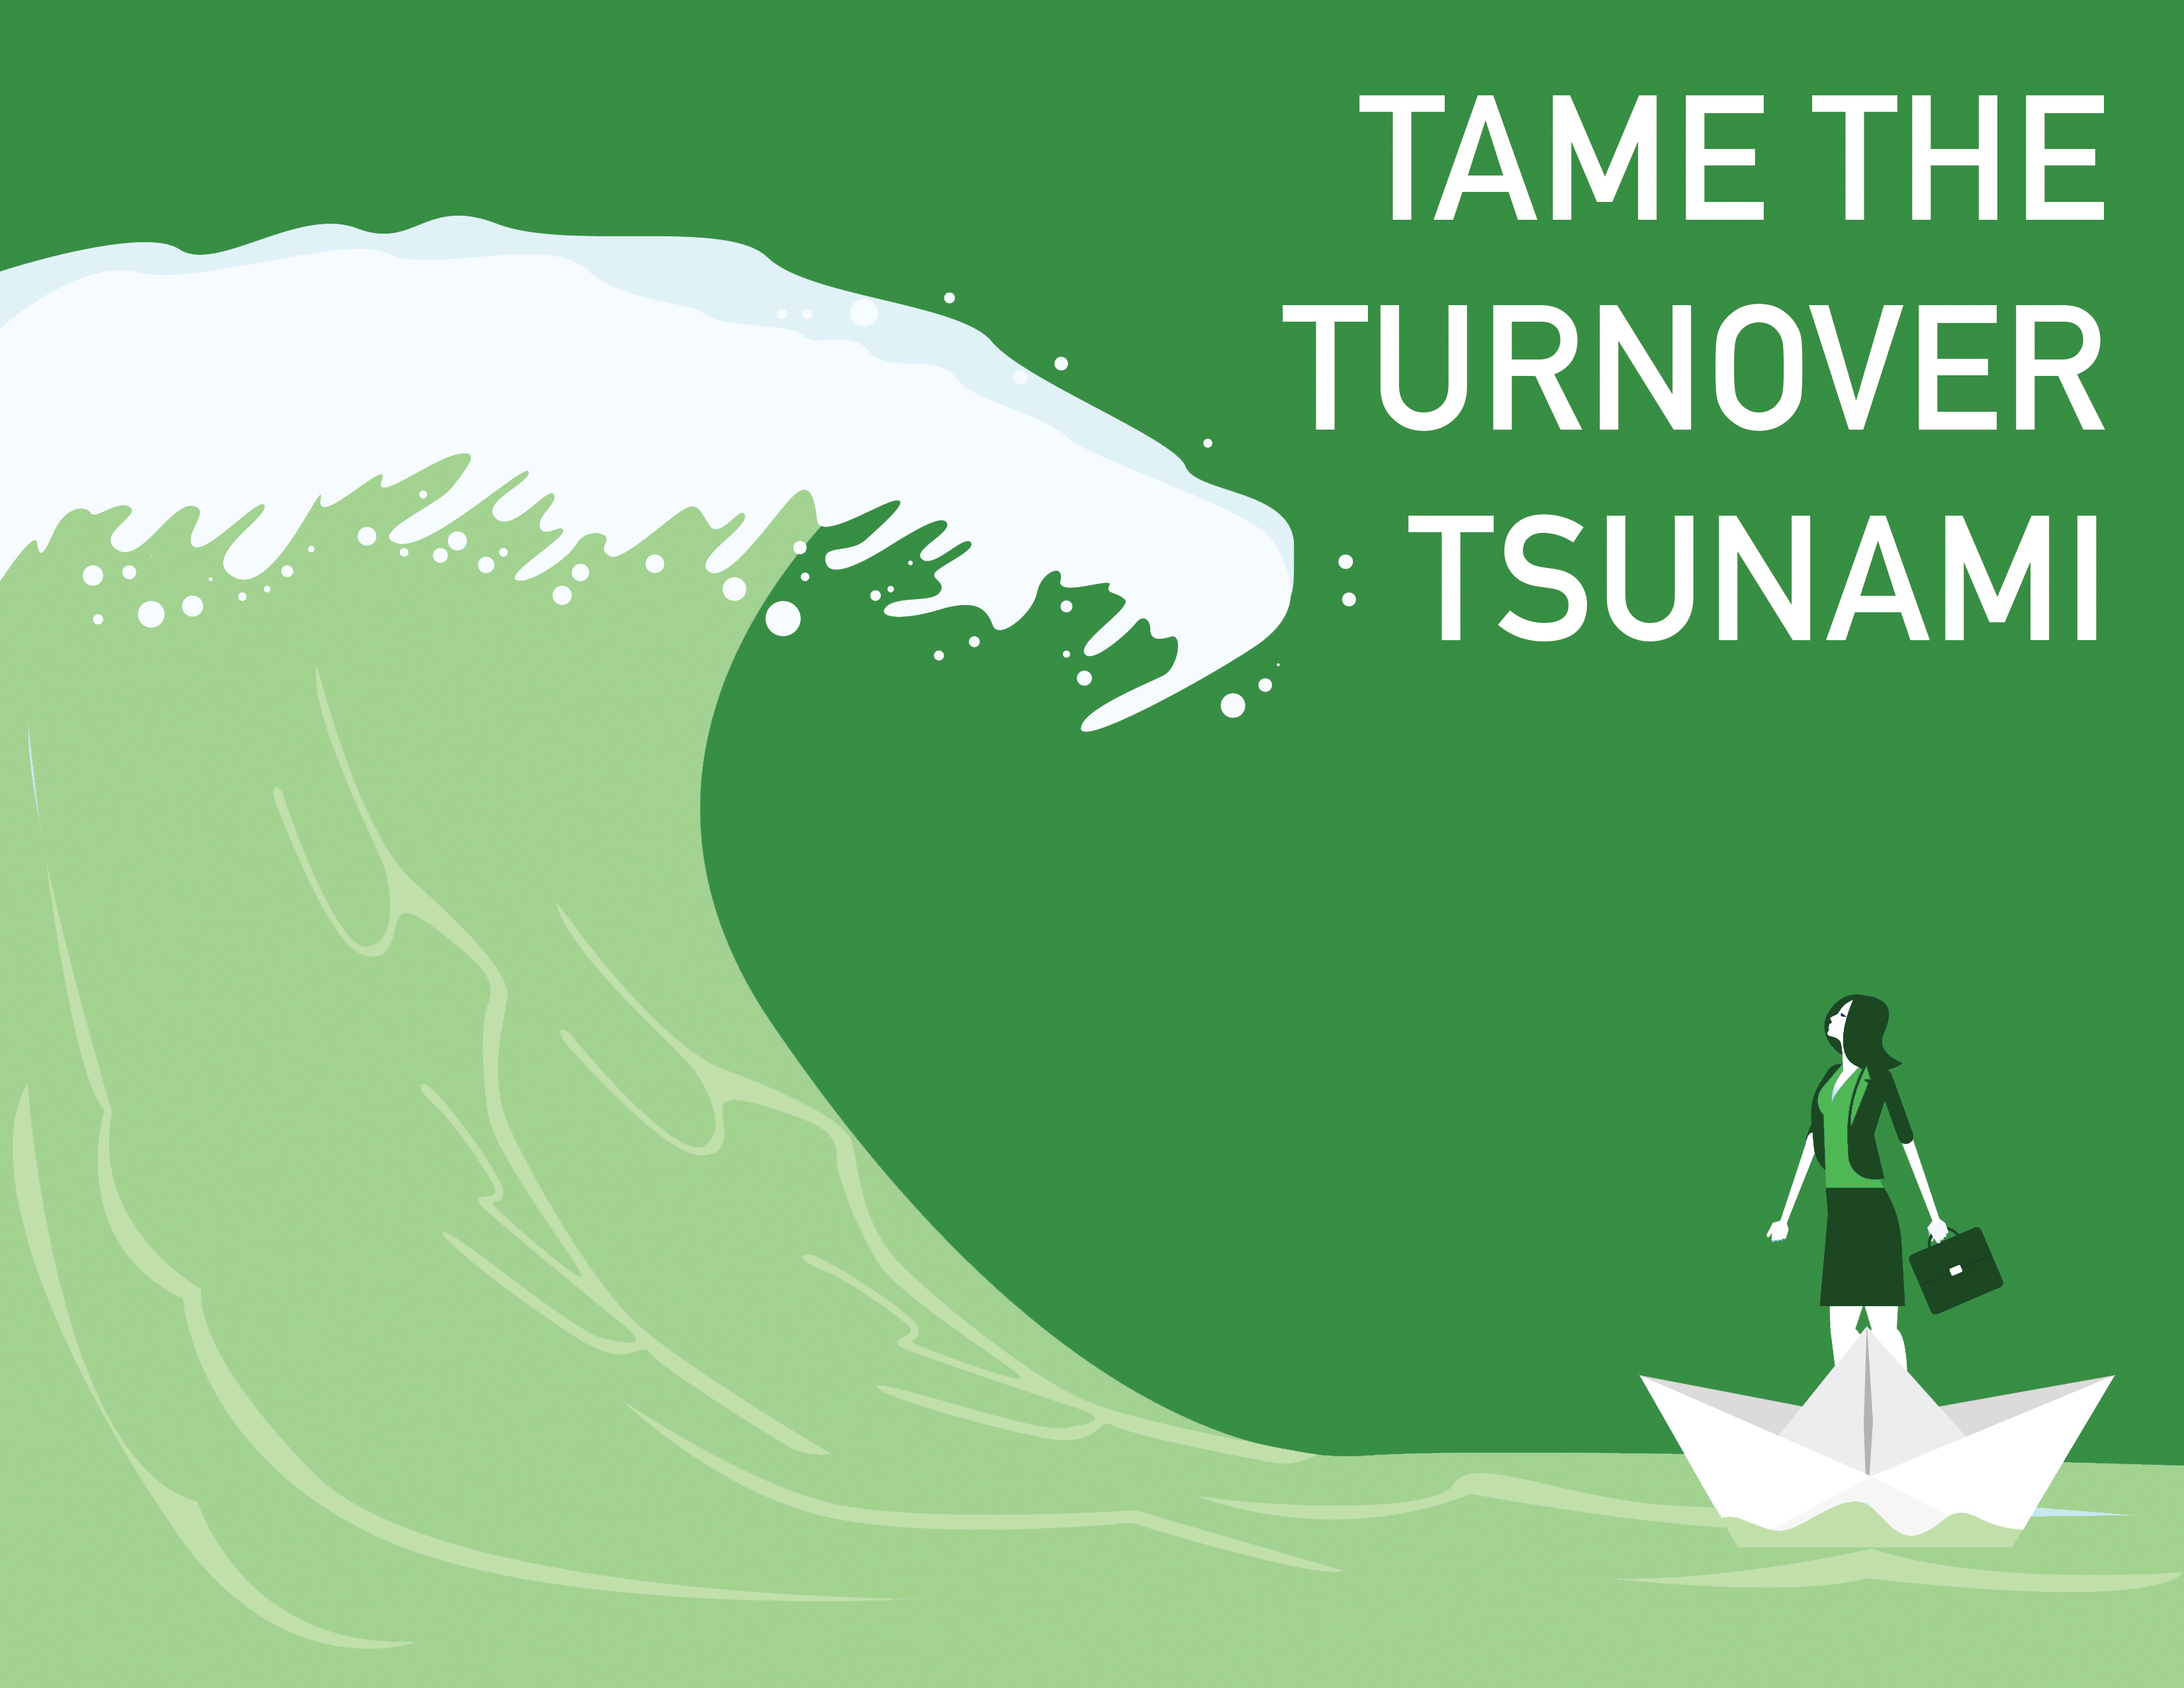 REAL tame_the_turnover_tsunami_feature_image-1